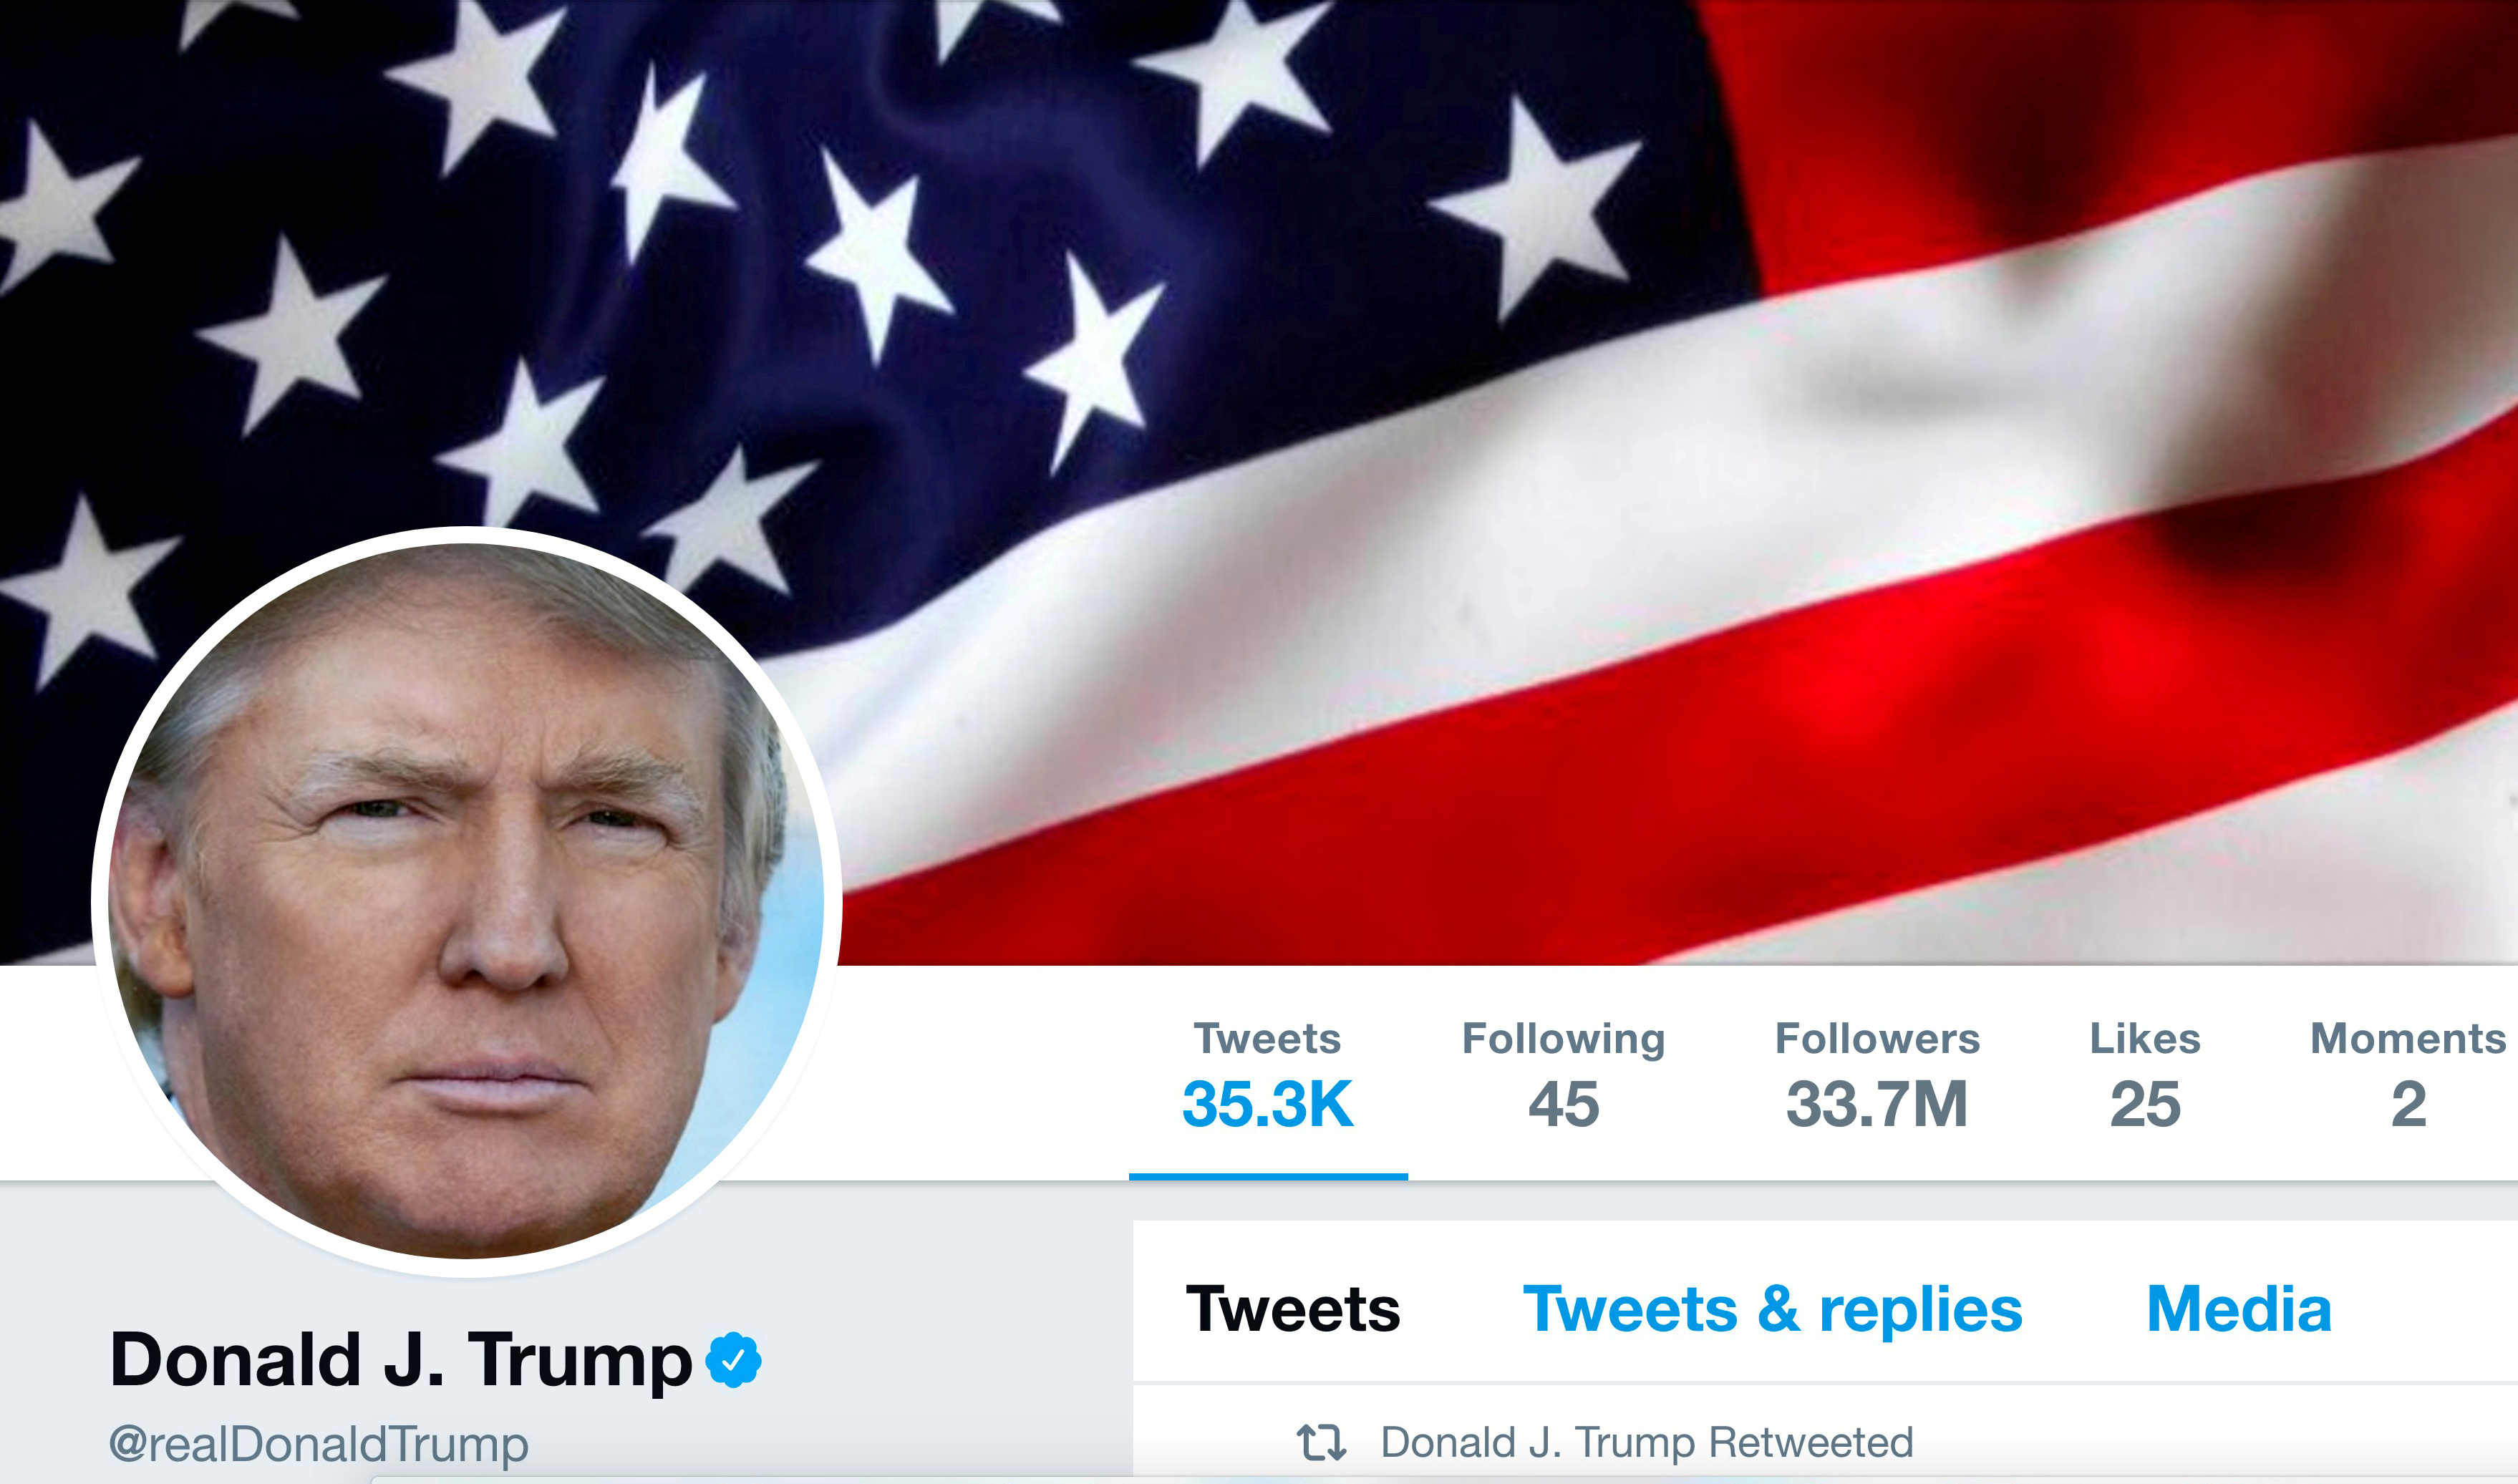 The masthead of U.S. President Donald Trump's @realDonaldTrump Twitter account is seen on July 11, 2017. @realDonaldTrump/Handout/File Photo via REUTERS ATTENTION EDITORS - THIS IMAGE WAS PROVIDED BY A THIRD PARTY - RC1ED2D7D190